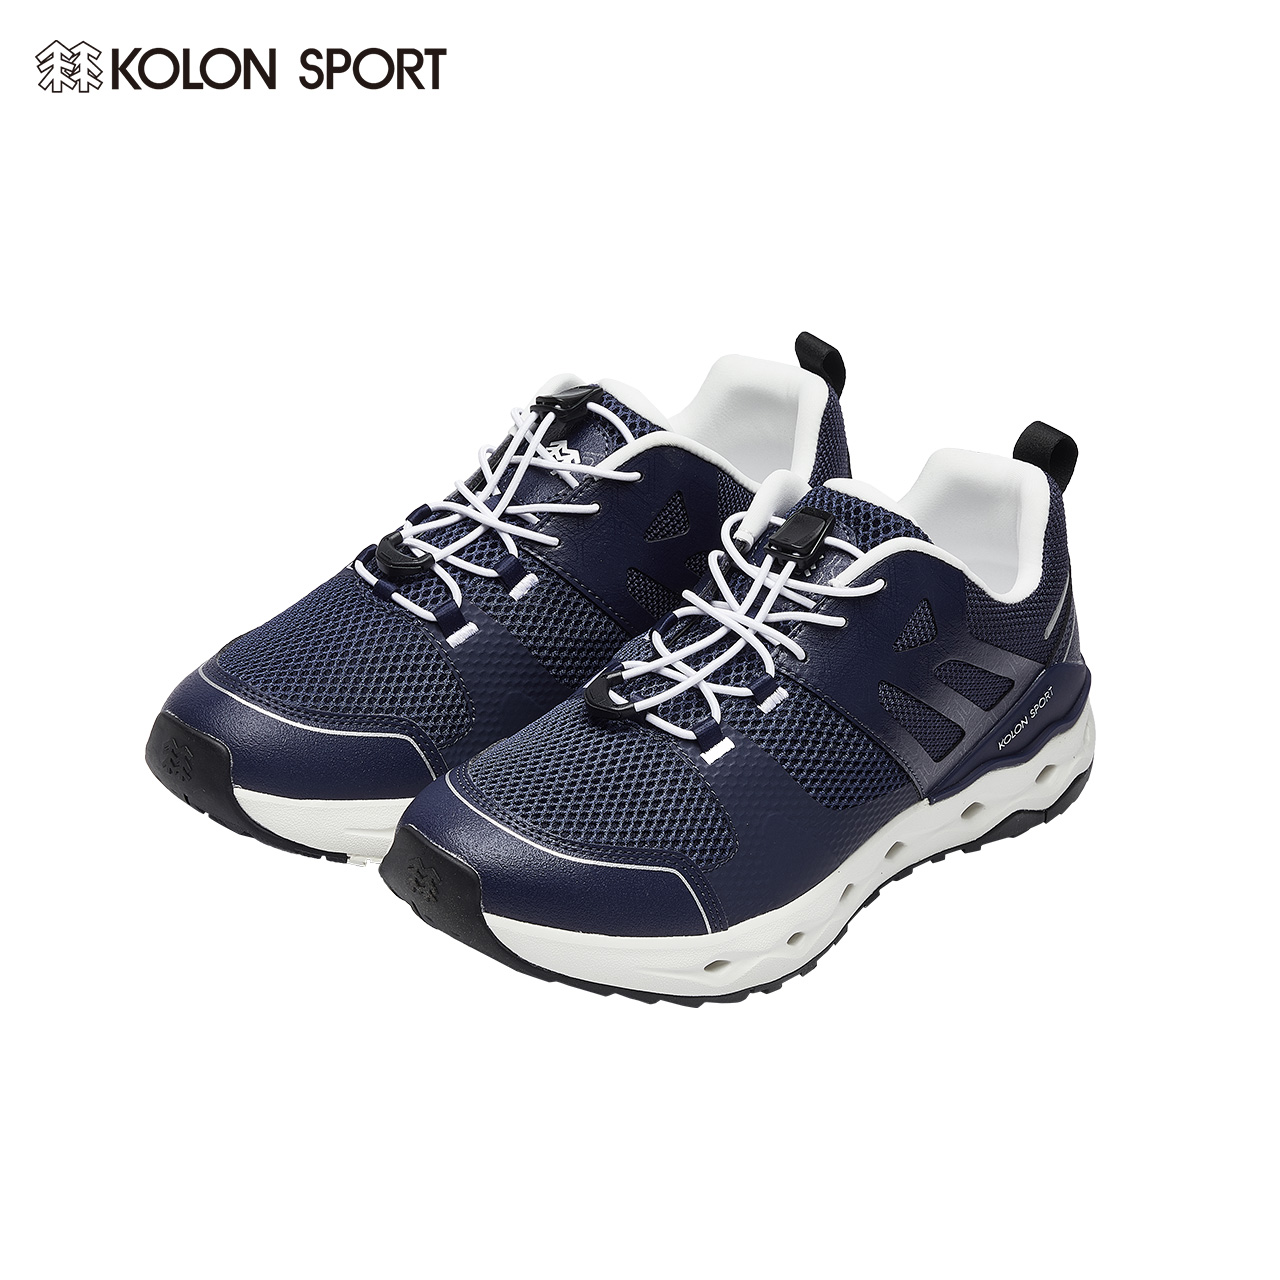 KOLONSPORT Colong mens shoes DEO summer shoes new mens backshoe wading sneakers outdoor shoes